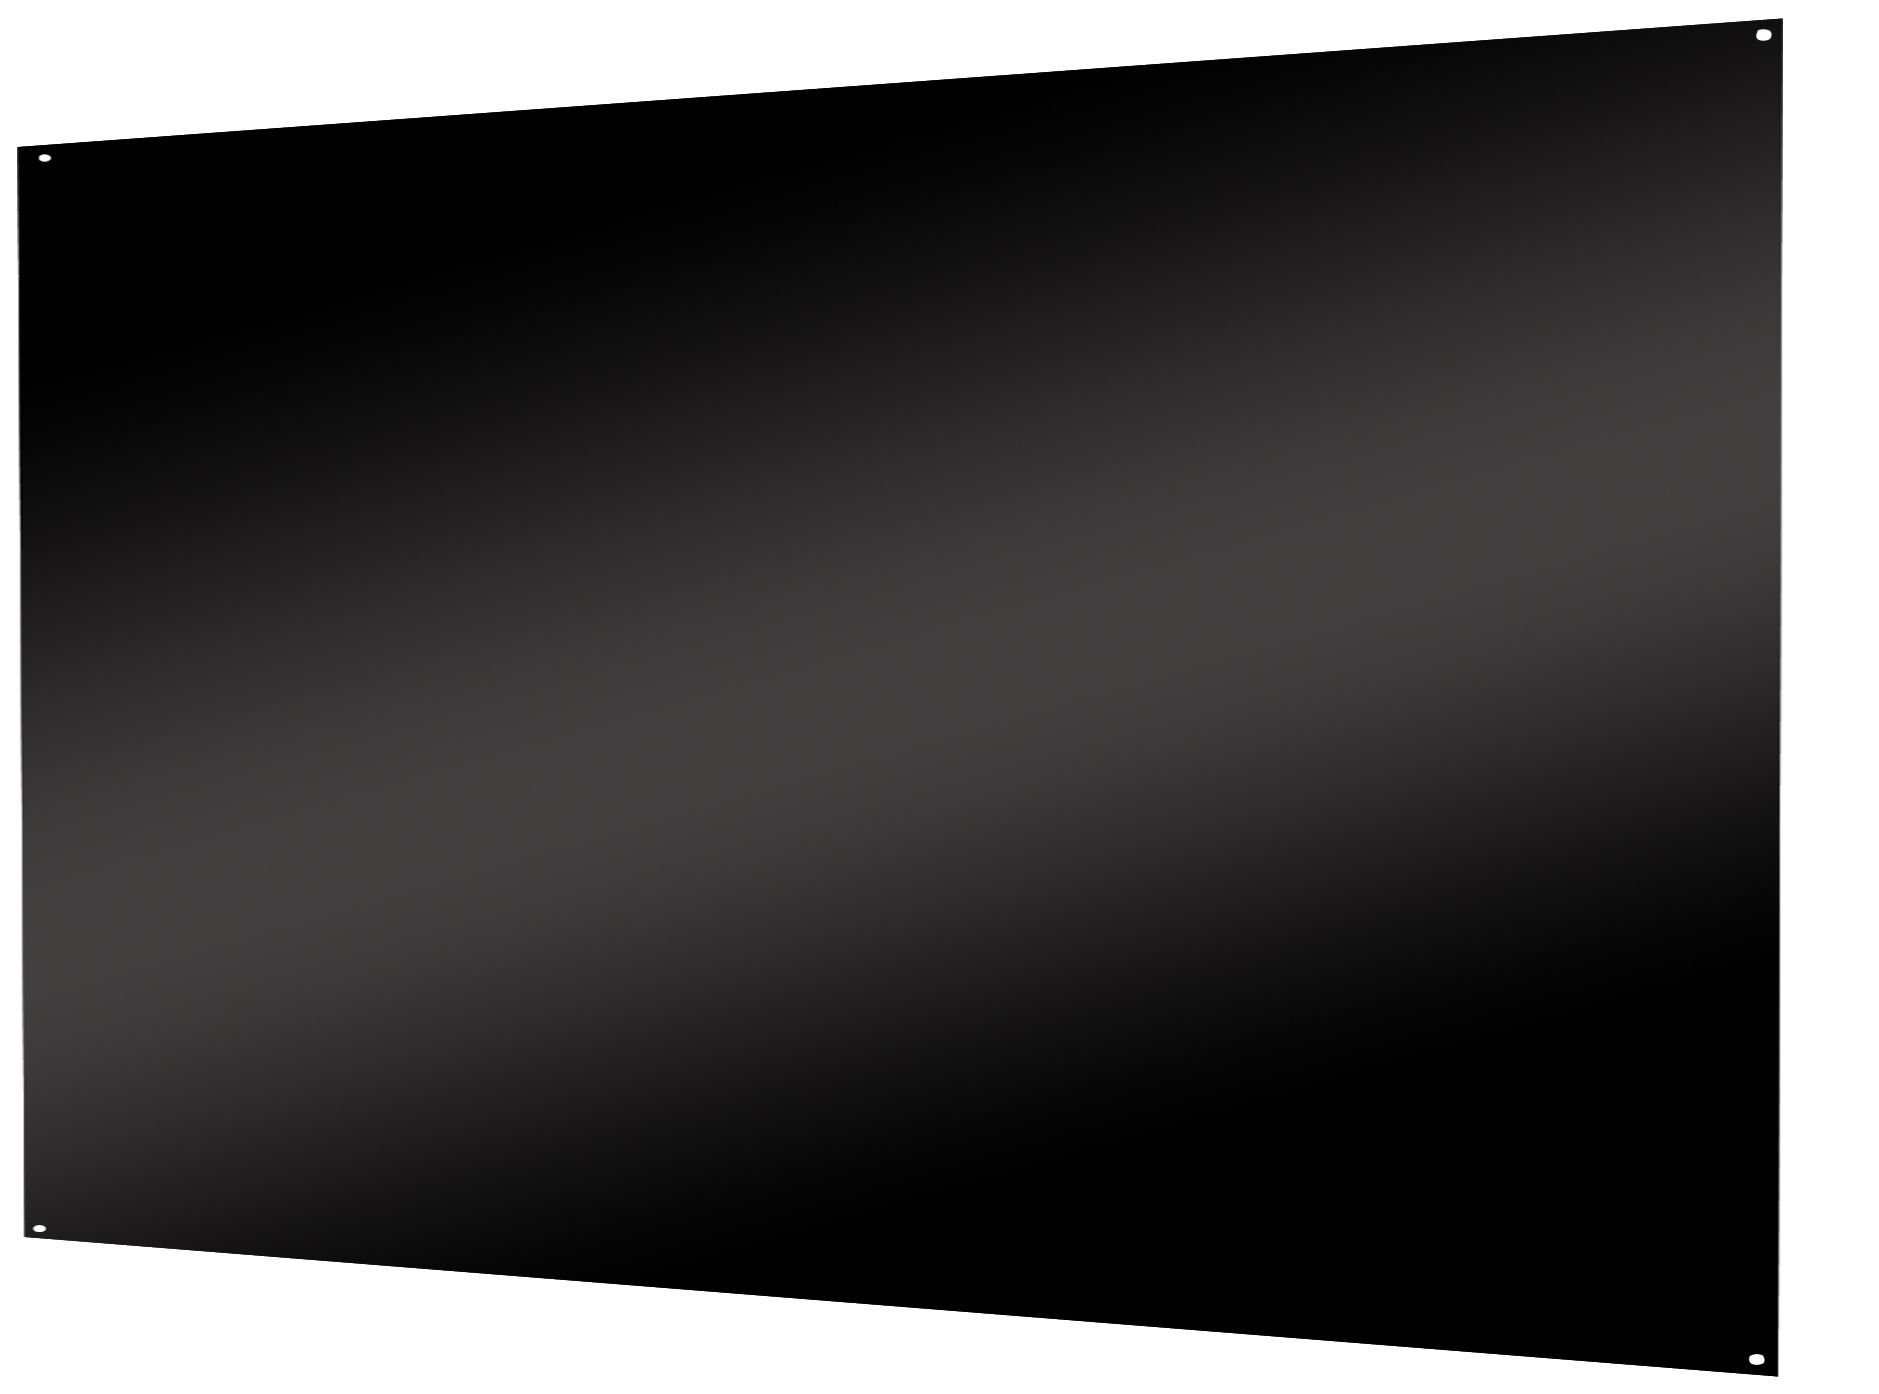 Air King SP2442B Range Hood Back Splash, 42-Inch by 24-Inch, Black Finish